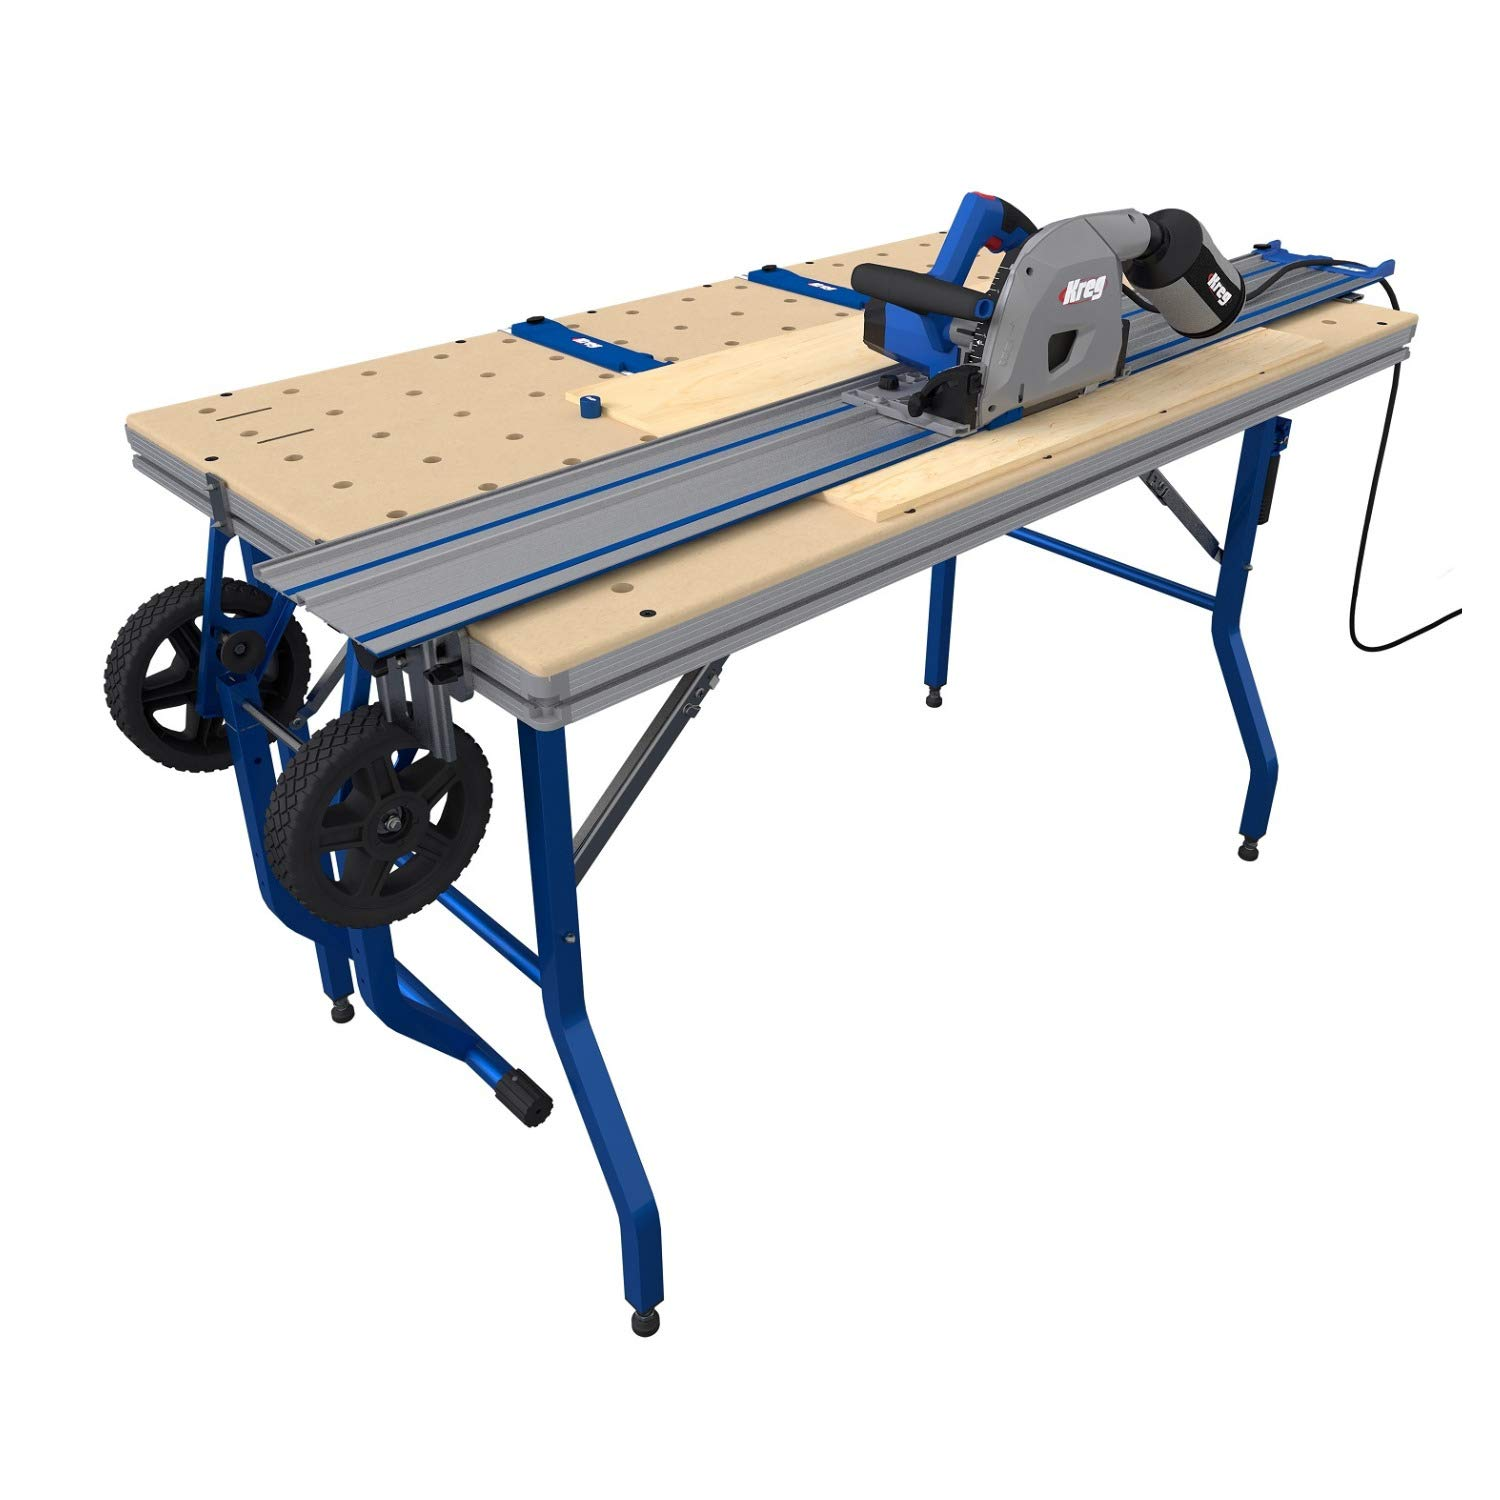 Kreg ACS3000 Adaptive Cutting System Plunge Saw & 62'' Guide Track With Project Table